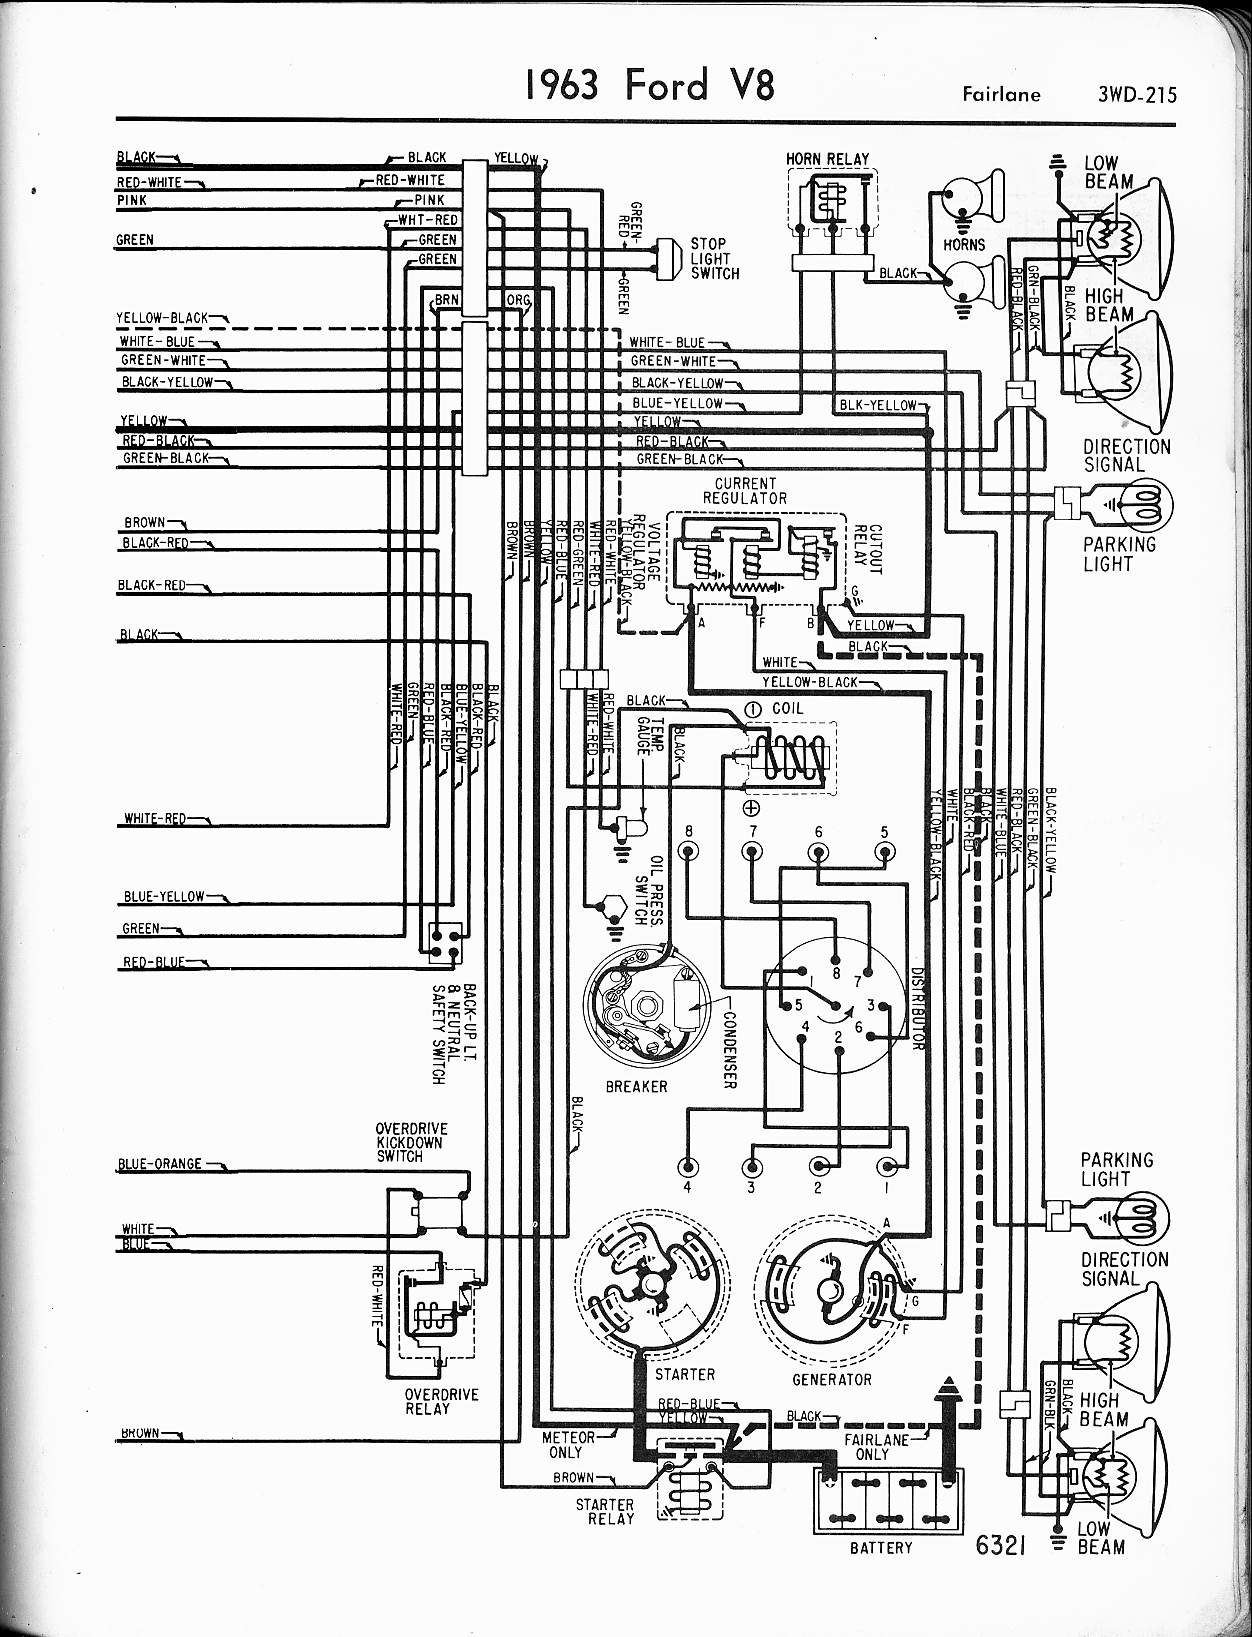 Motor Starter Wiring Diagram 1970 Torino Libraries 1969 Ford Simple Schema